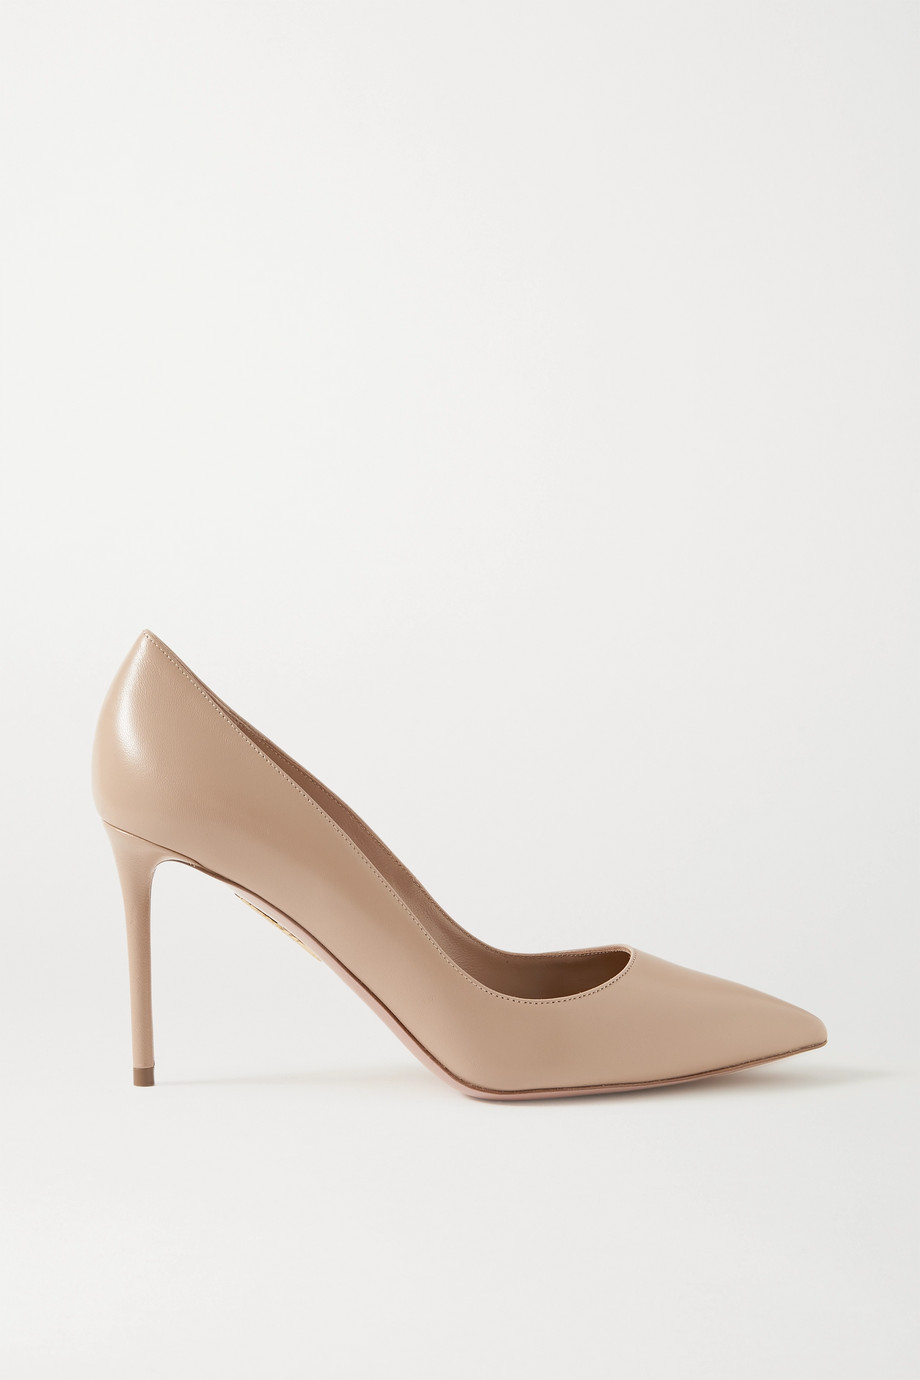 Aquazzura Purist 85 leather pumps